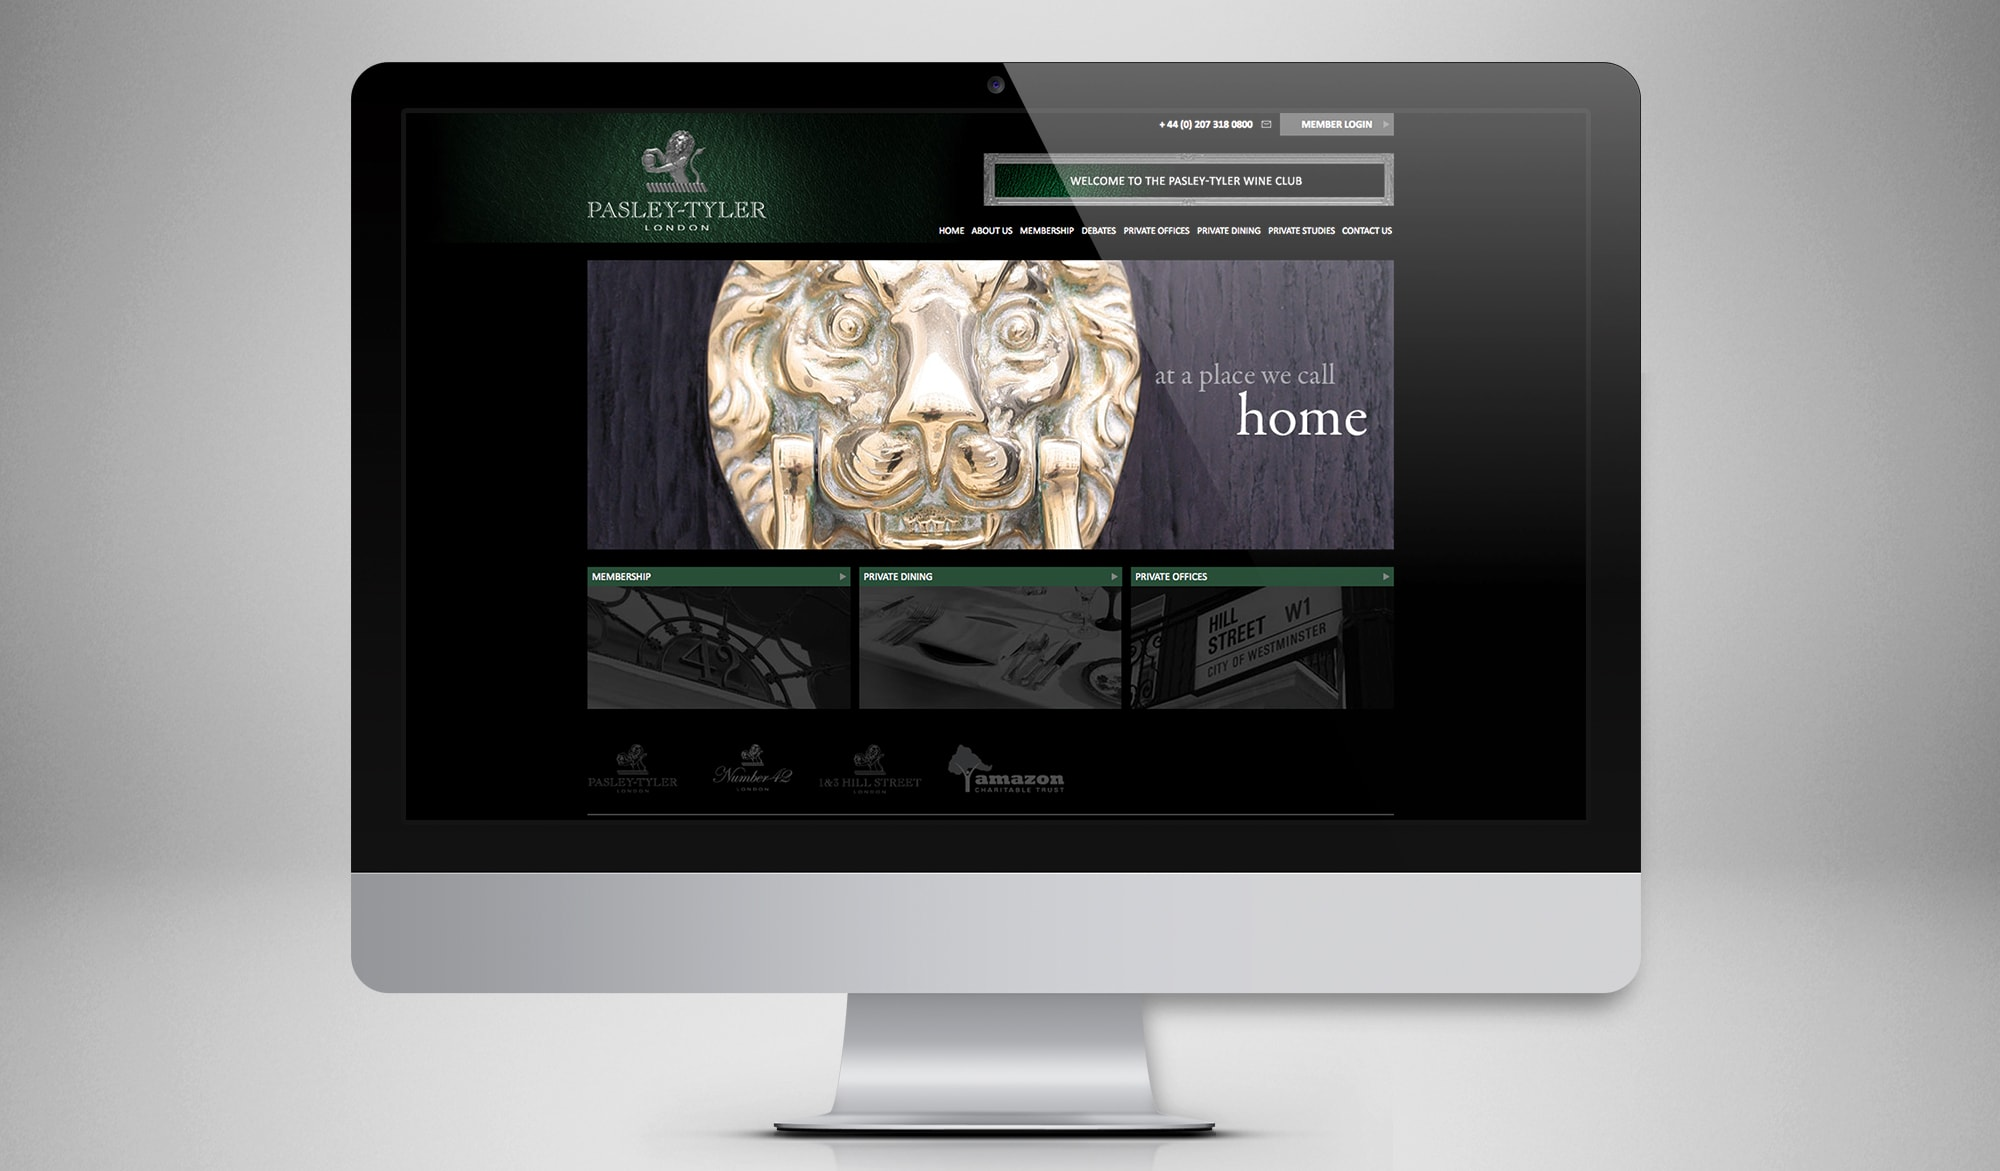 Pasley Tyler - website homepage